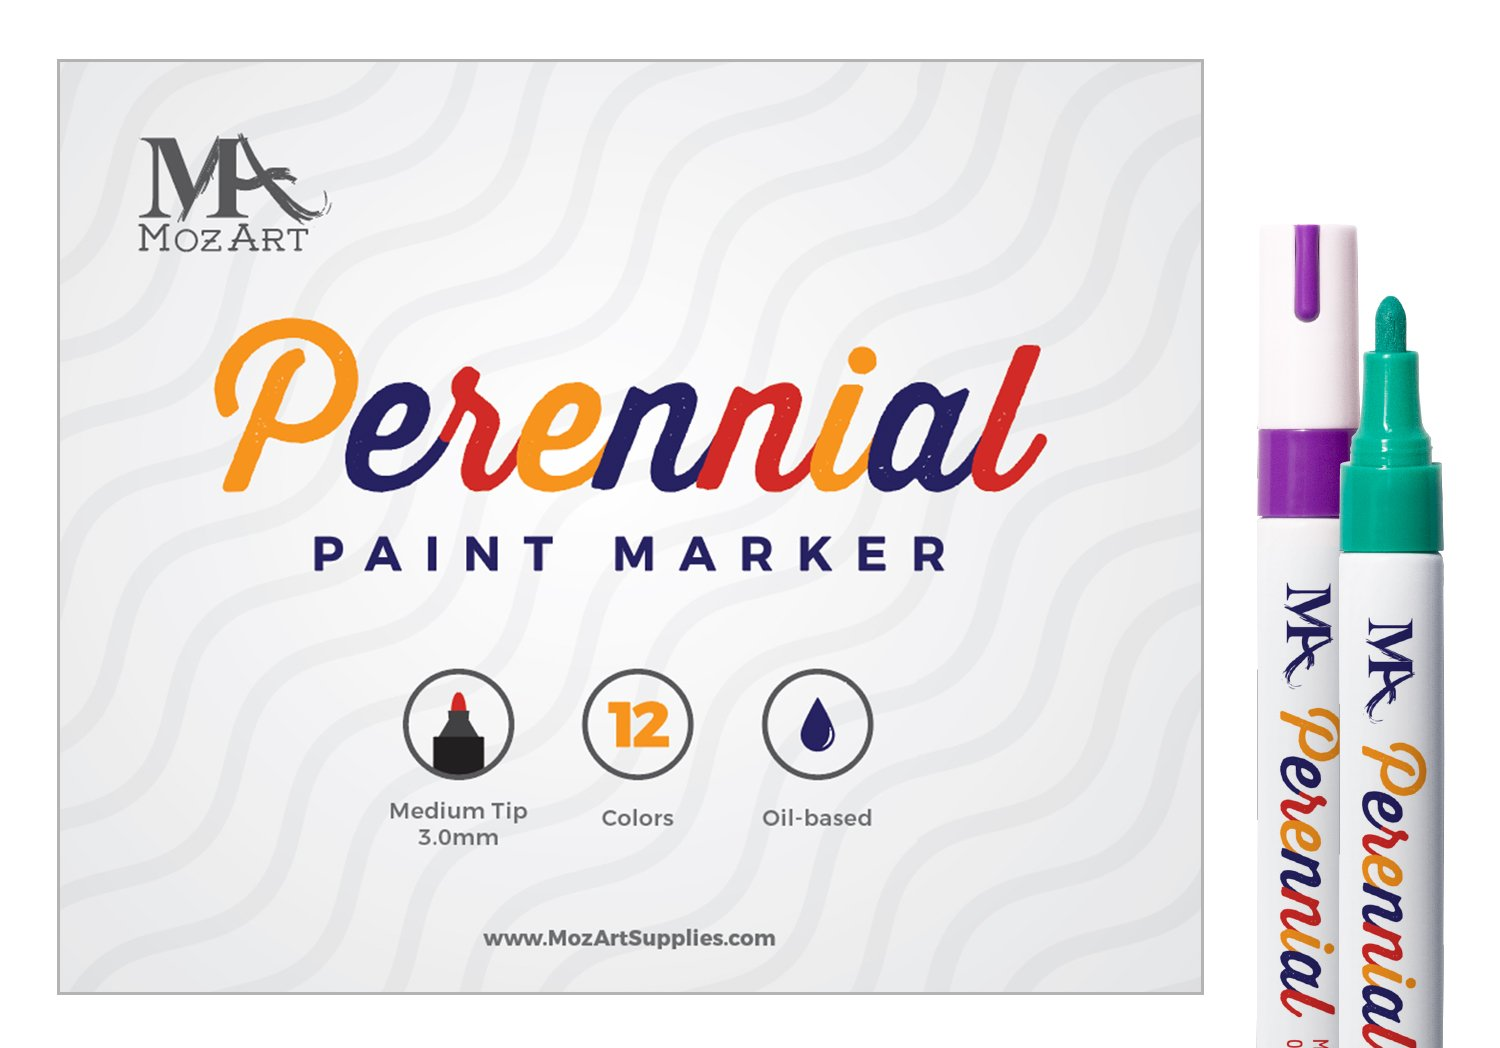 Permanent Paint Markers Set - 12 Colors - Oil-Based - High Permanence - Marker Pens for Glass, Use on Metal, Wood, Porcelain, Plastic, Pottery, Fabric, Poster Board - MozArt Supplies